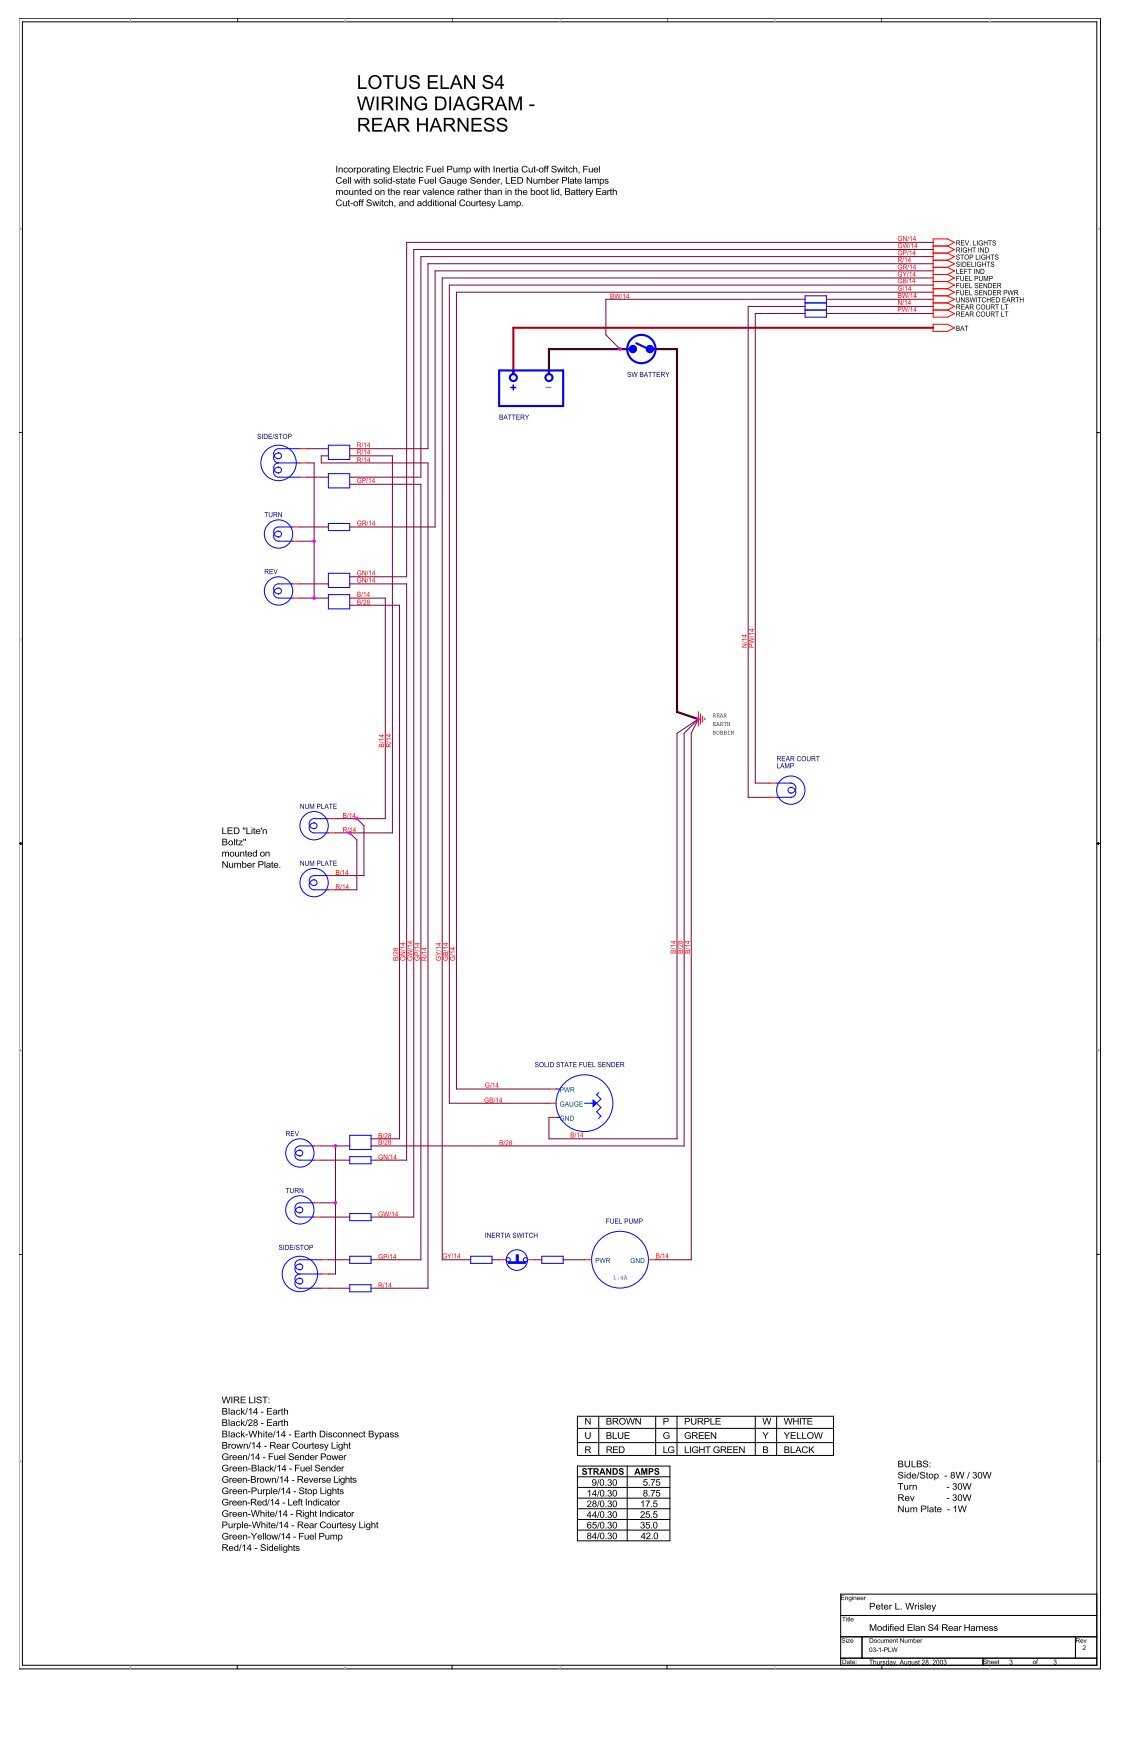 western elegante golf cart wiring diagram best wiring diagram 36v golf cart wiring diagram western golf cart wiring diagram [ 1138 x 1737 Pixel ]